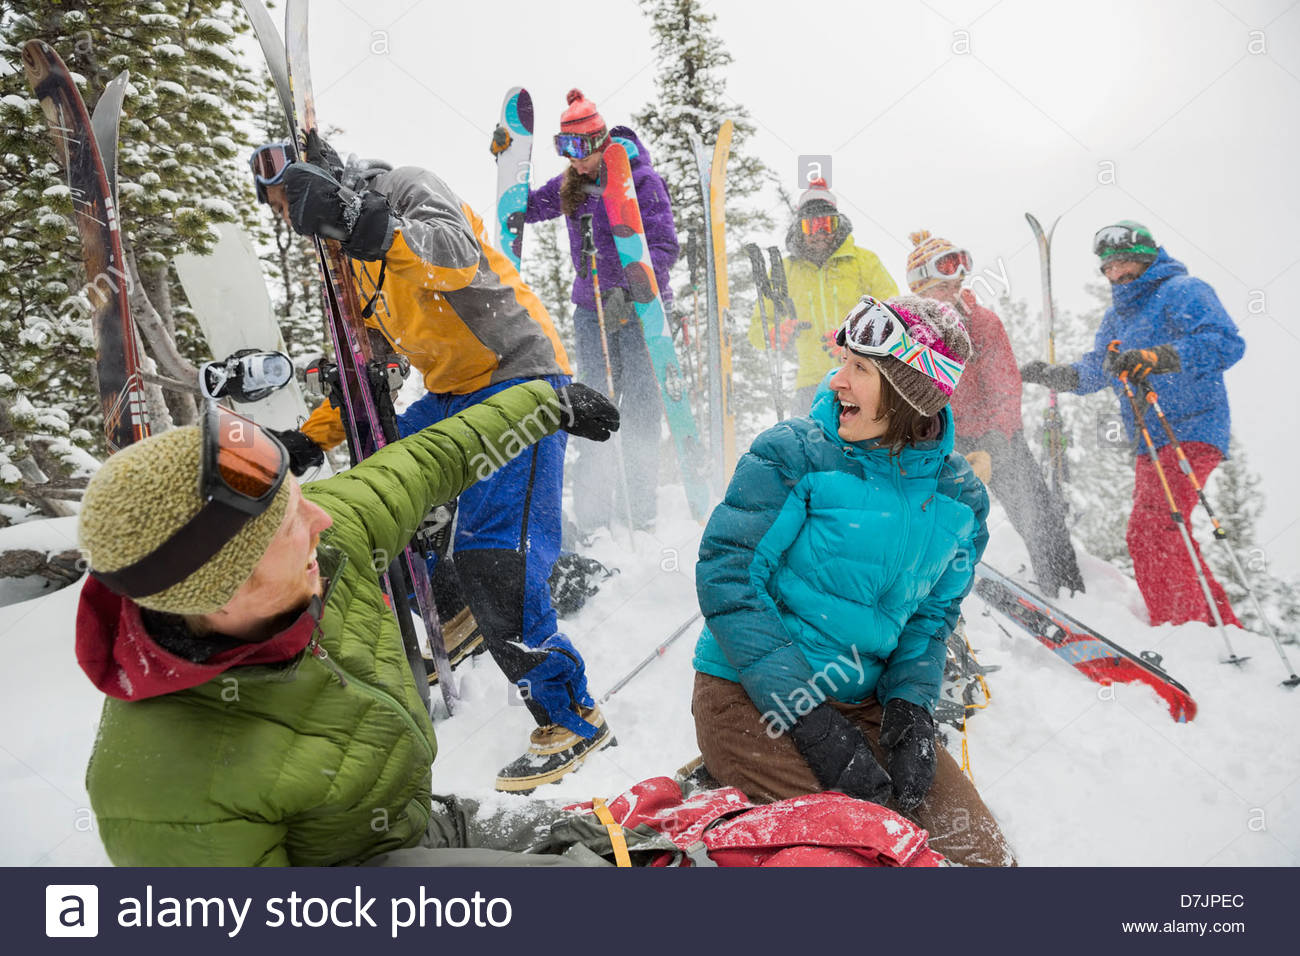 Group of backcountry skiers throwing snow - Stock Image